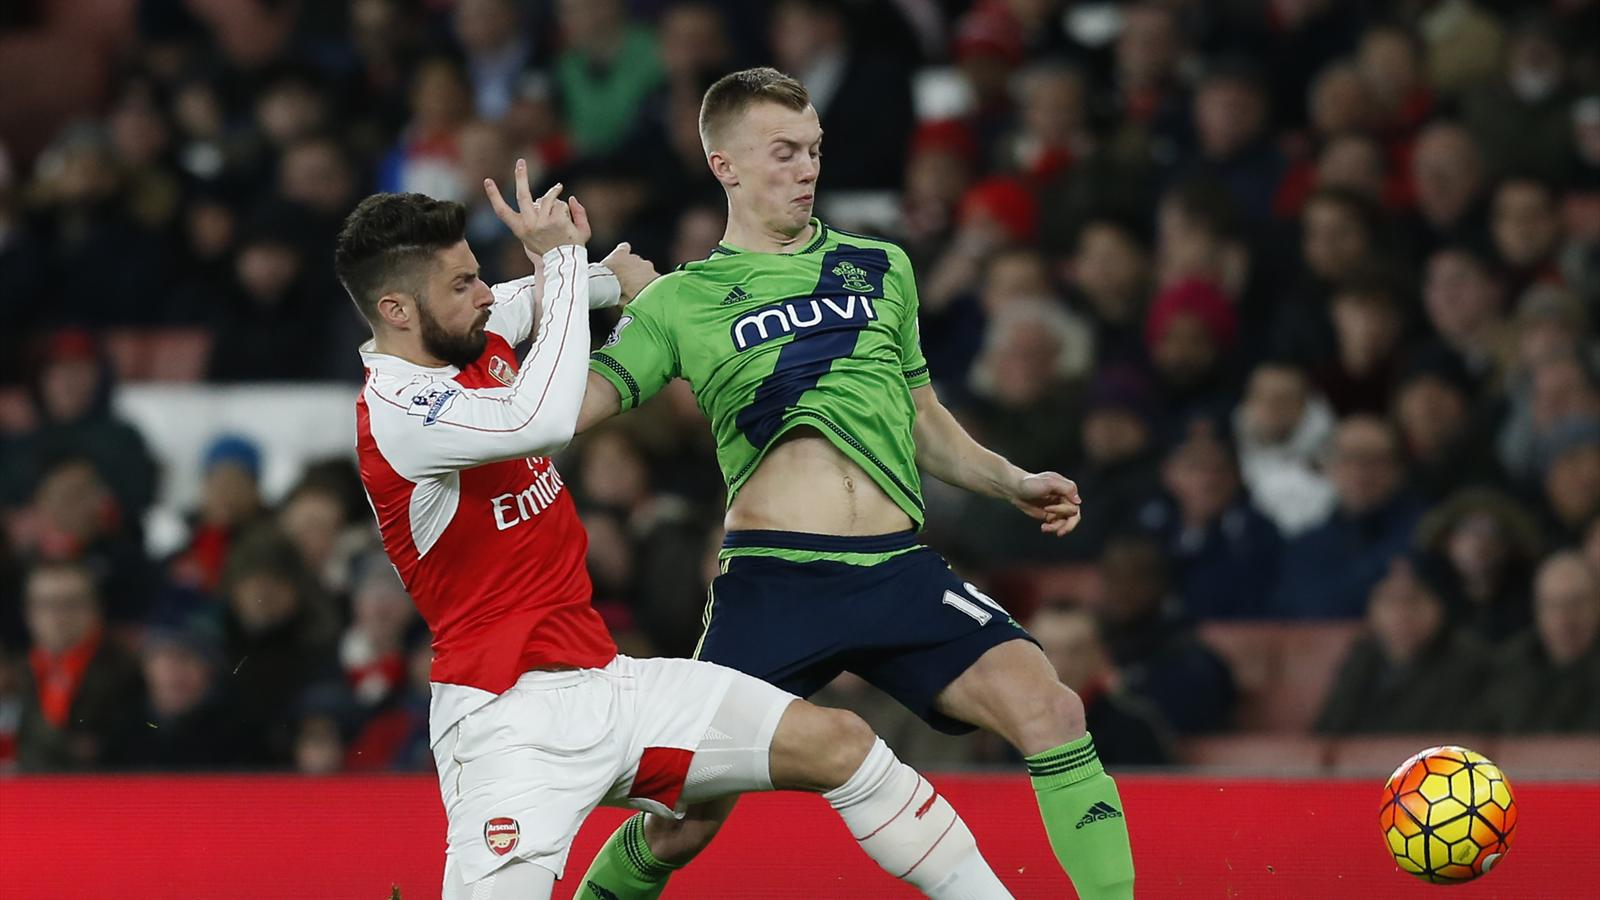 Arsenal's French striker Olivier Giroud (L) vies with Southampton's English midfielder James Ward-Prowse (R) during the English Premier League football match between Arsenal and Southampton at the Emirates Stadium in London on February 2, 2016